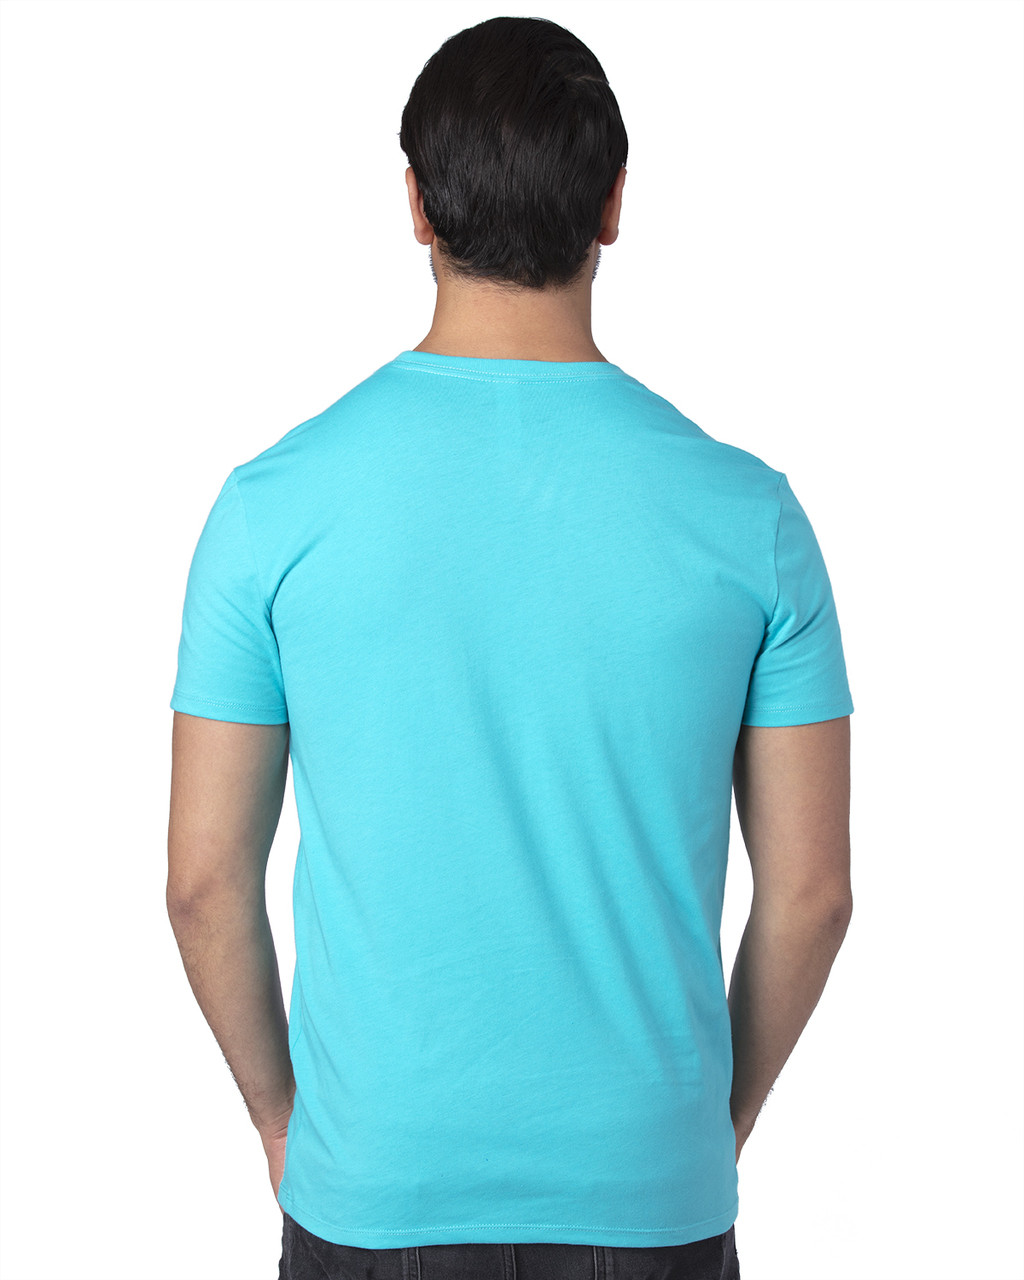 Pacific Blue - Back, 100A Threadfast Unisex Ultimate Short-Sleeve T-Shirt | BlankClothing.ca